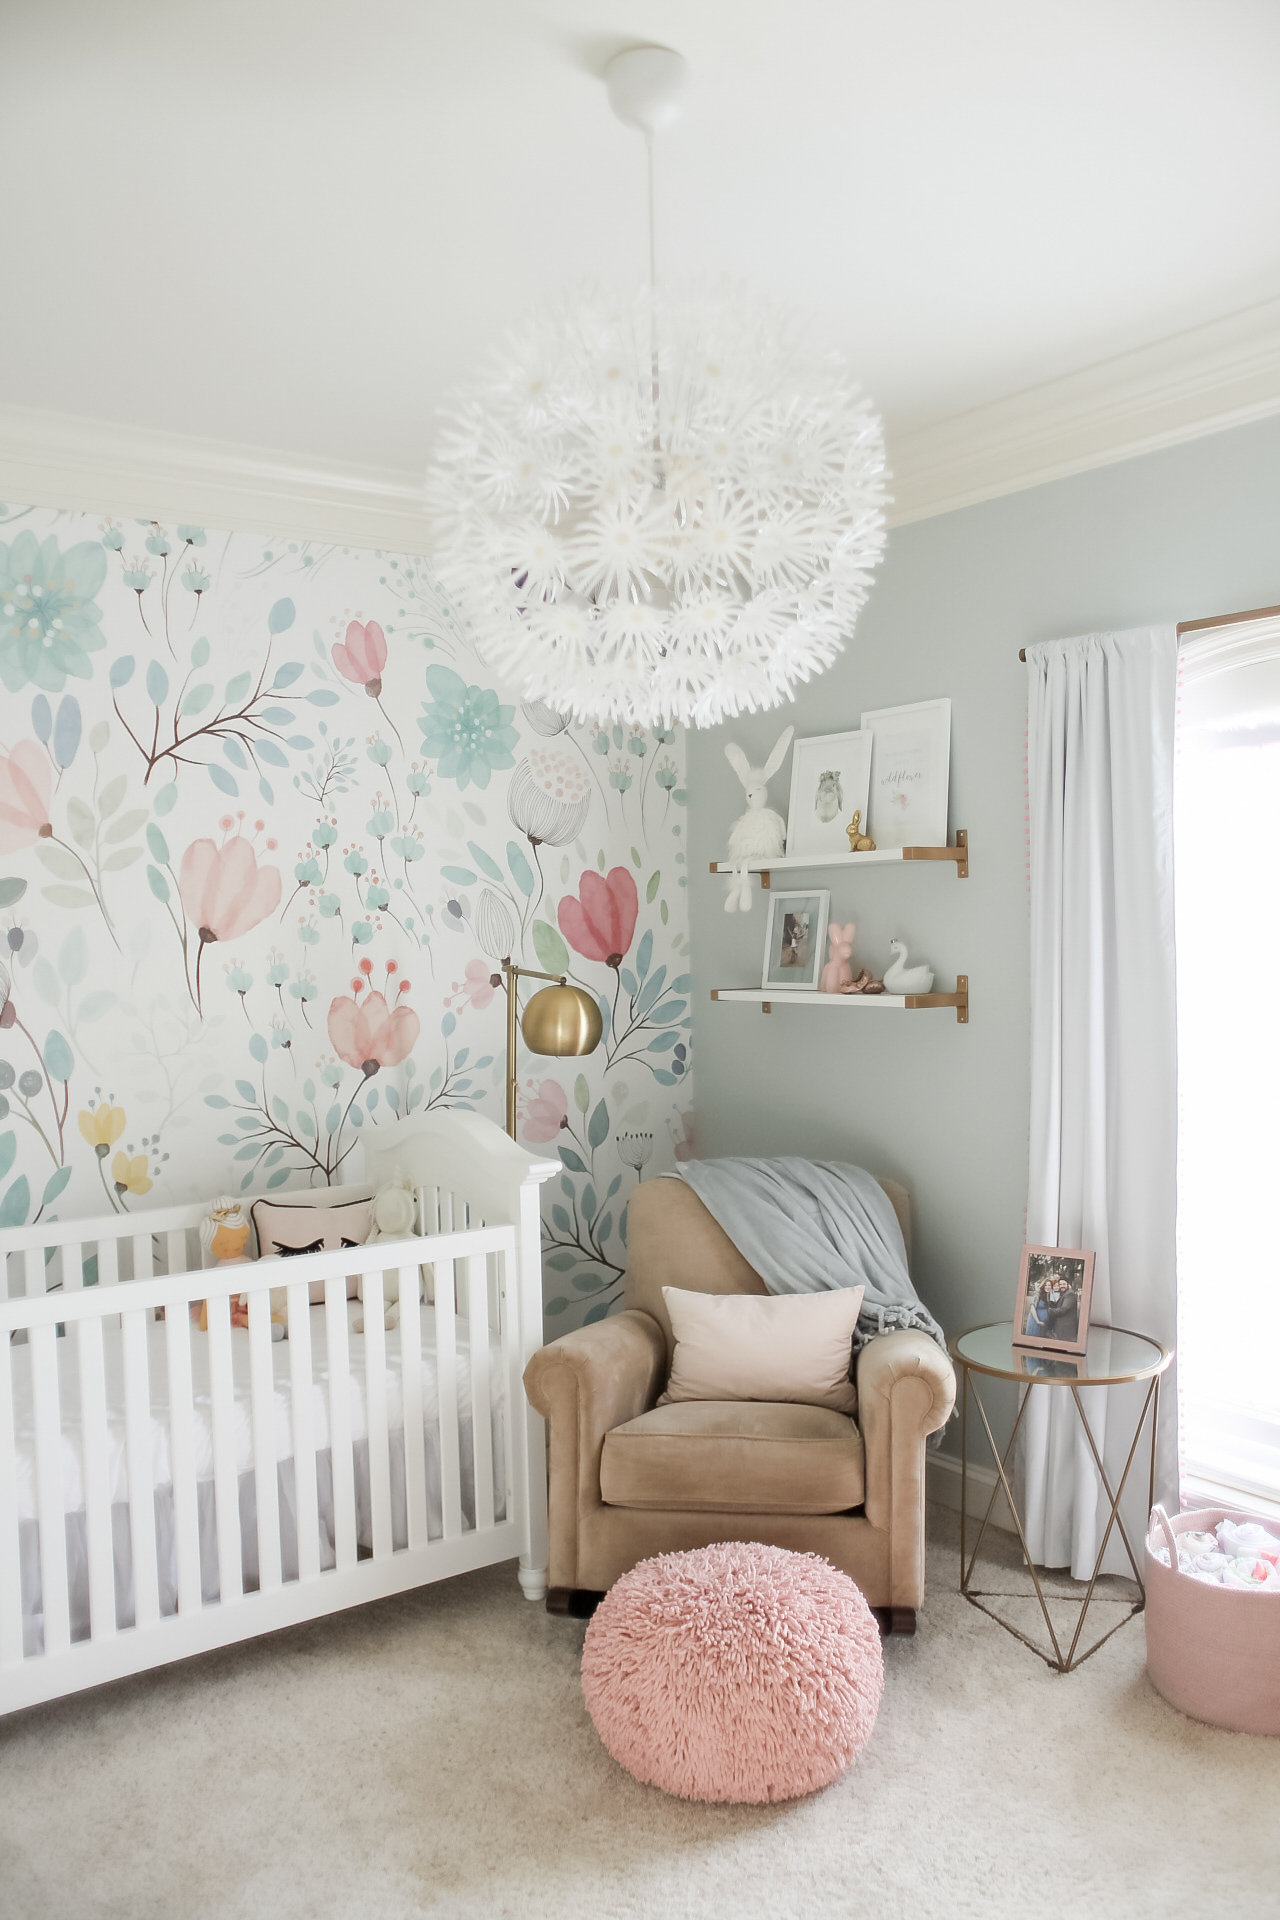 Baby Room Accessories: Bright And Whimsical Nursery For Colette